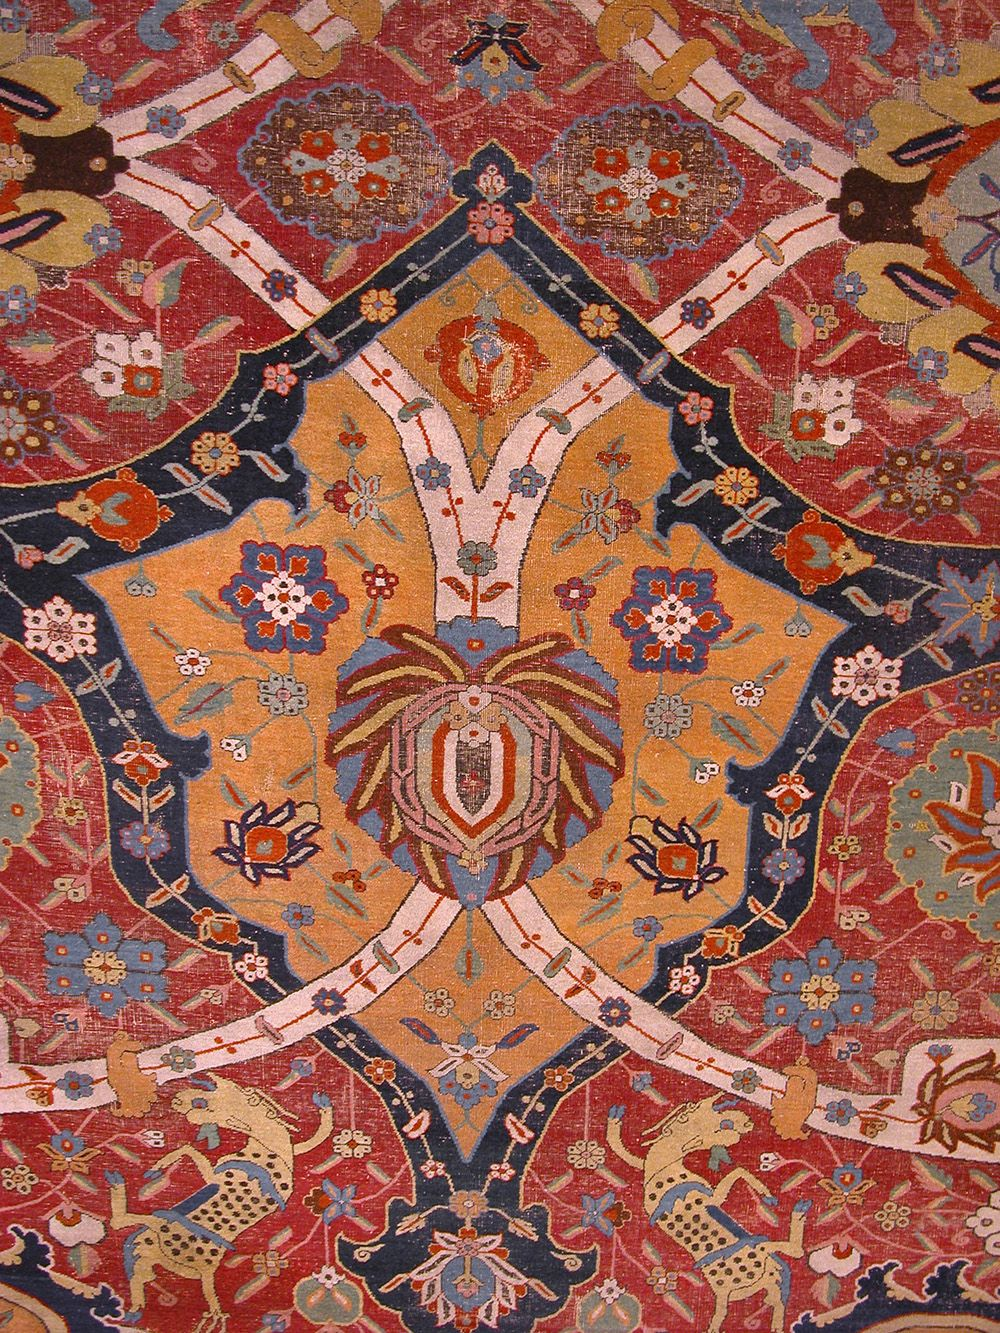 Safavid Carpet Early 17th Century The